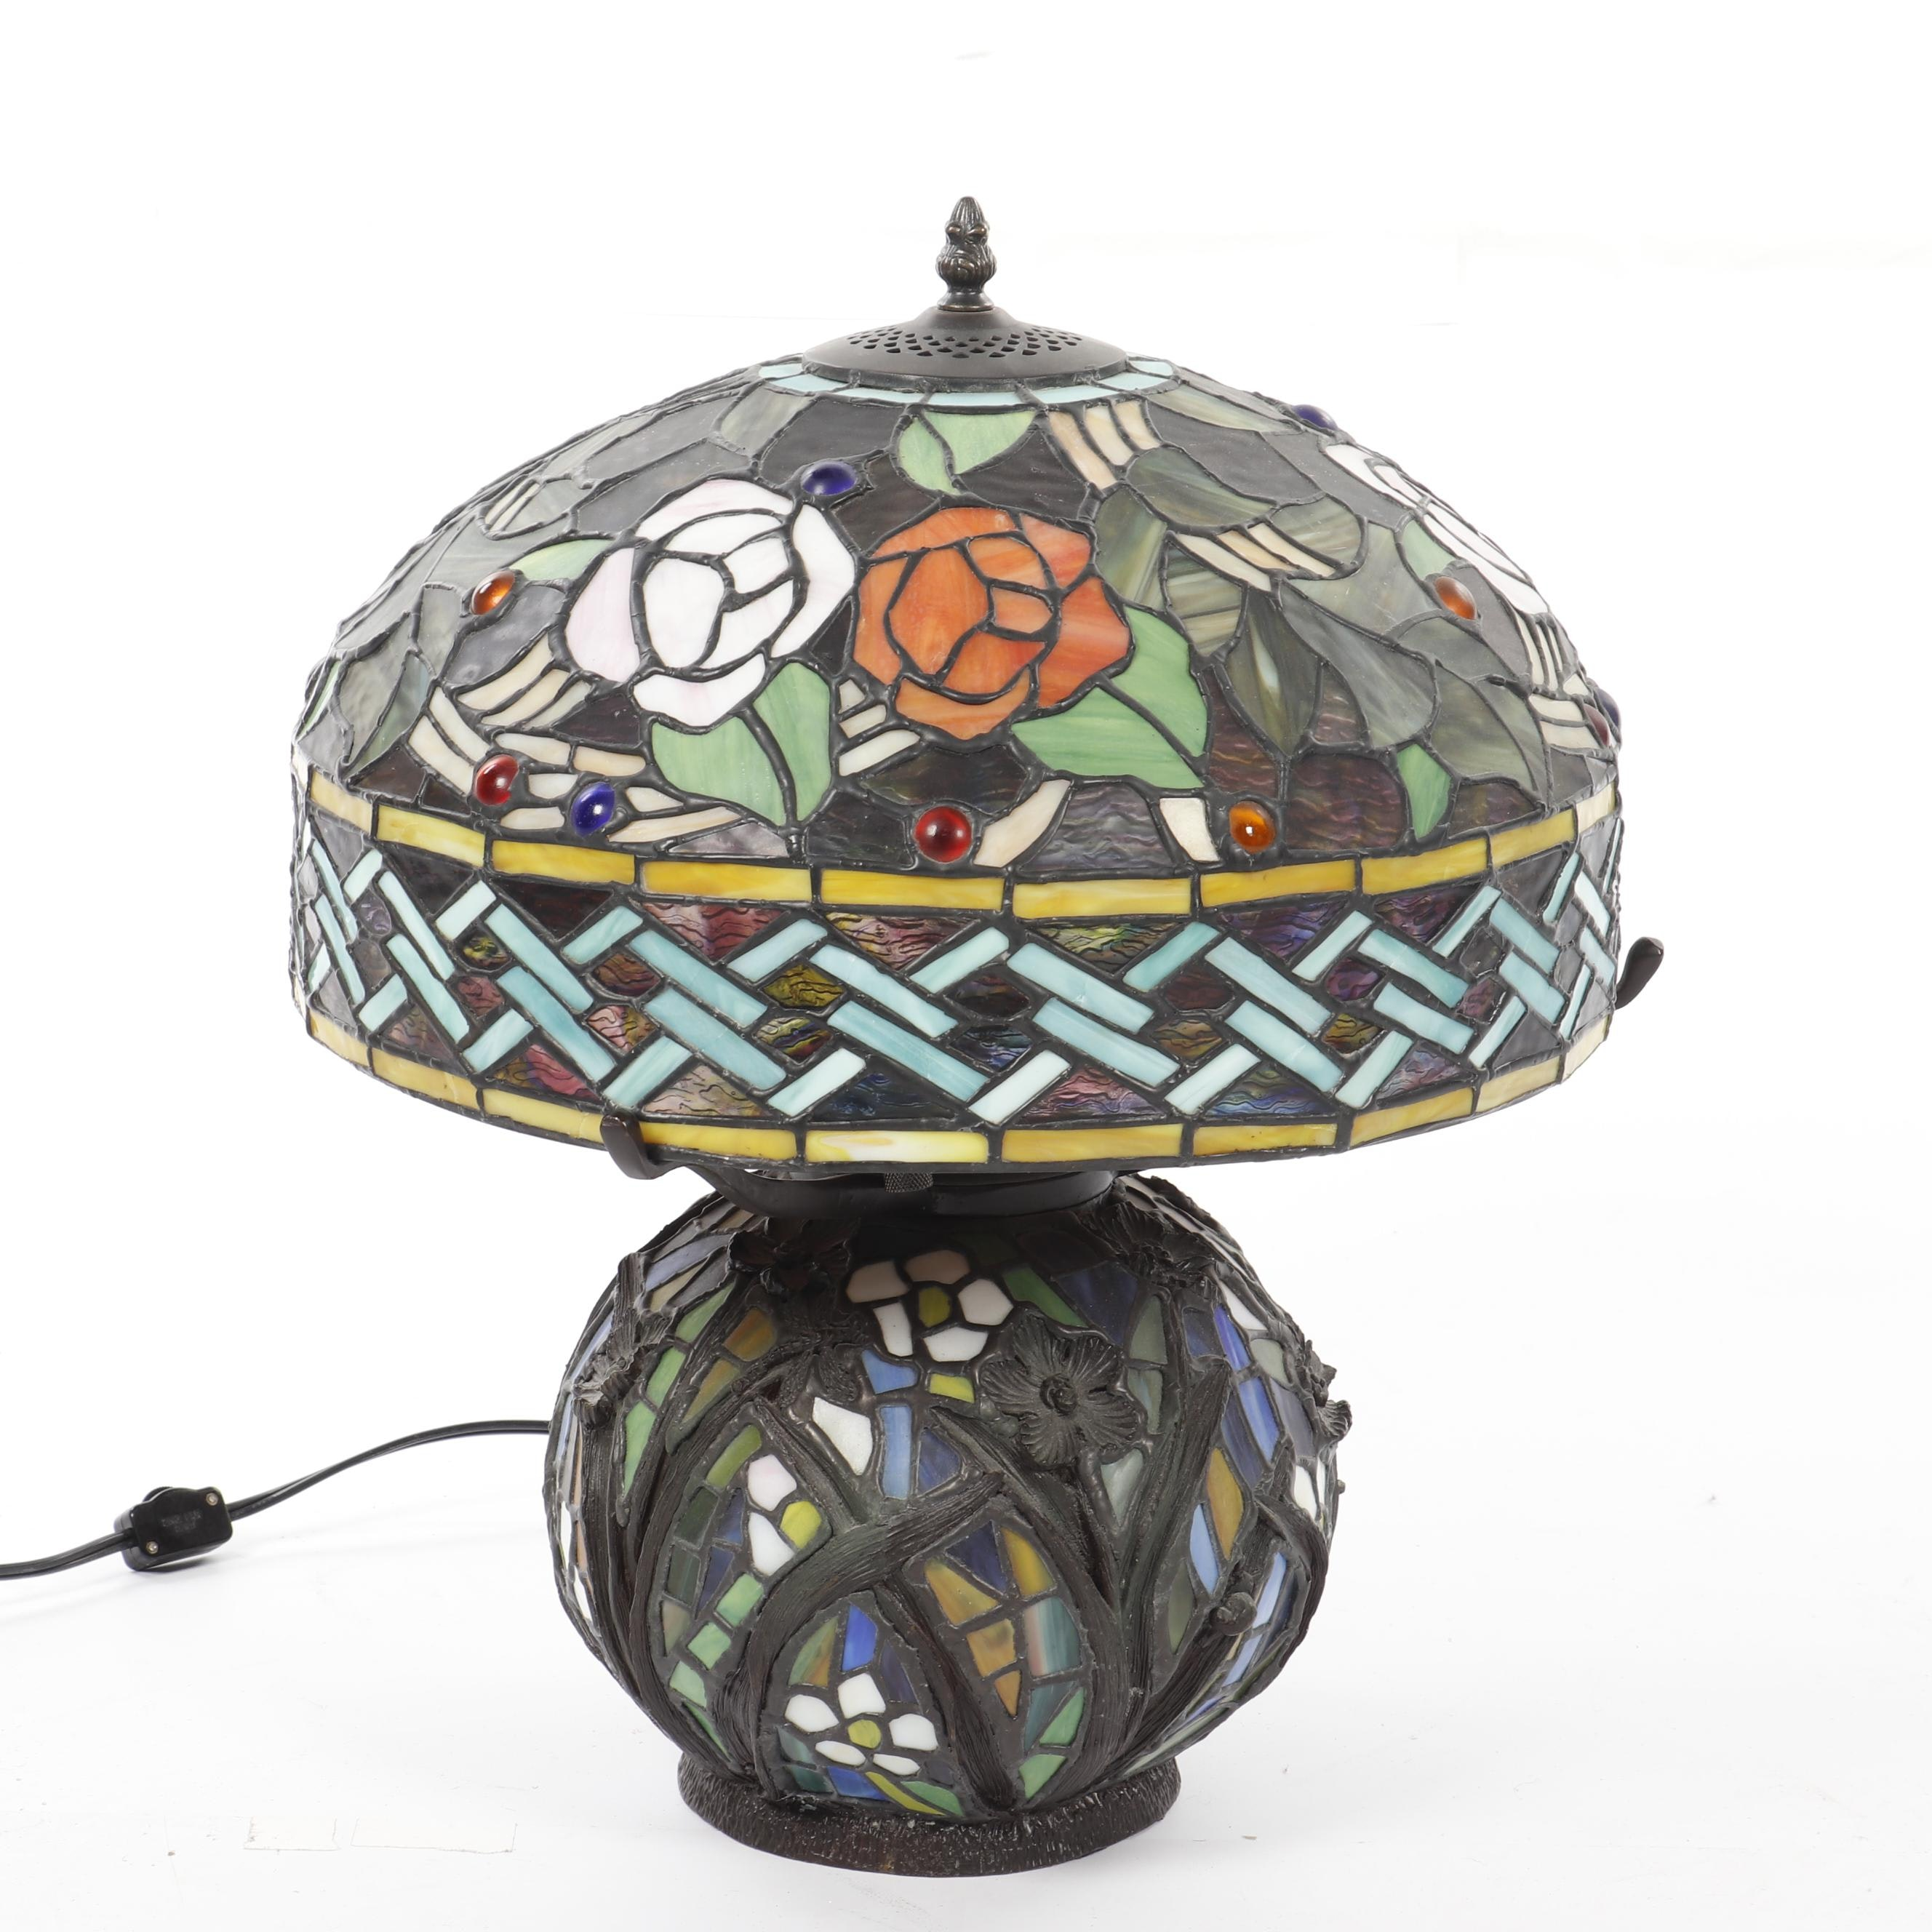 Floral Motif Stained and Slag Glass Lamp